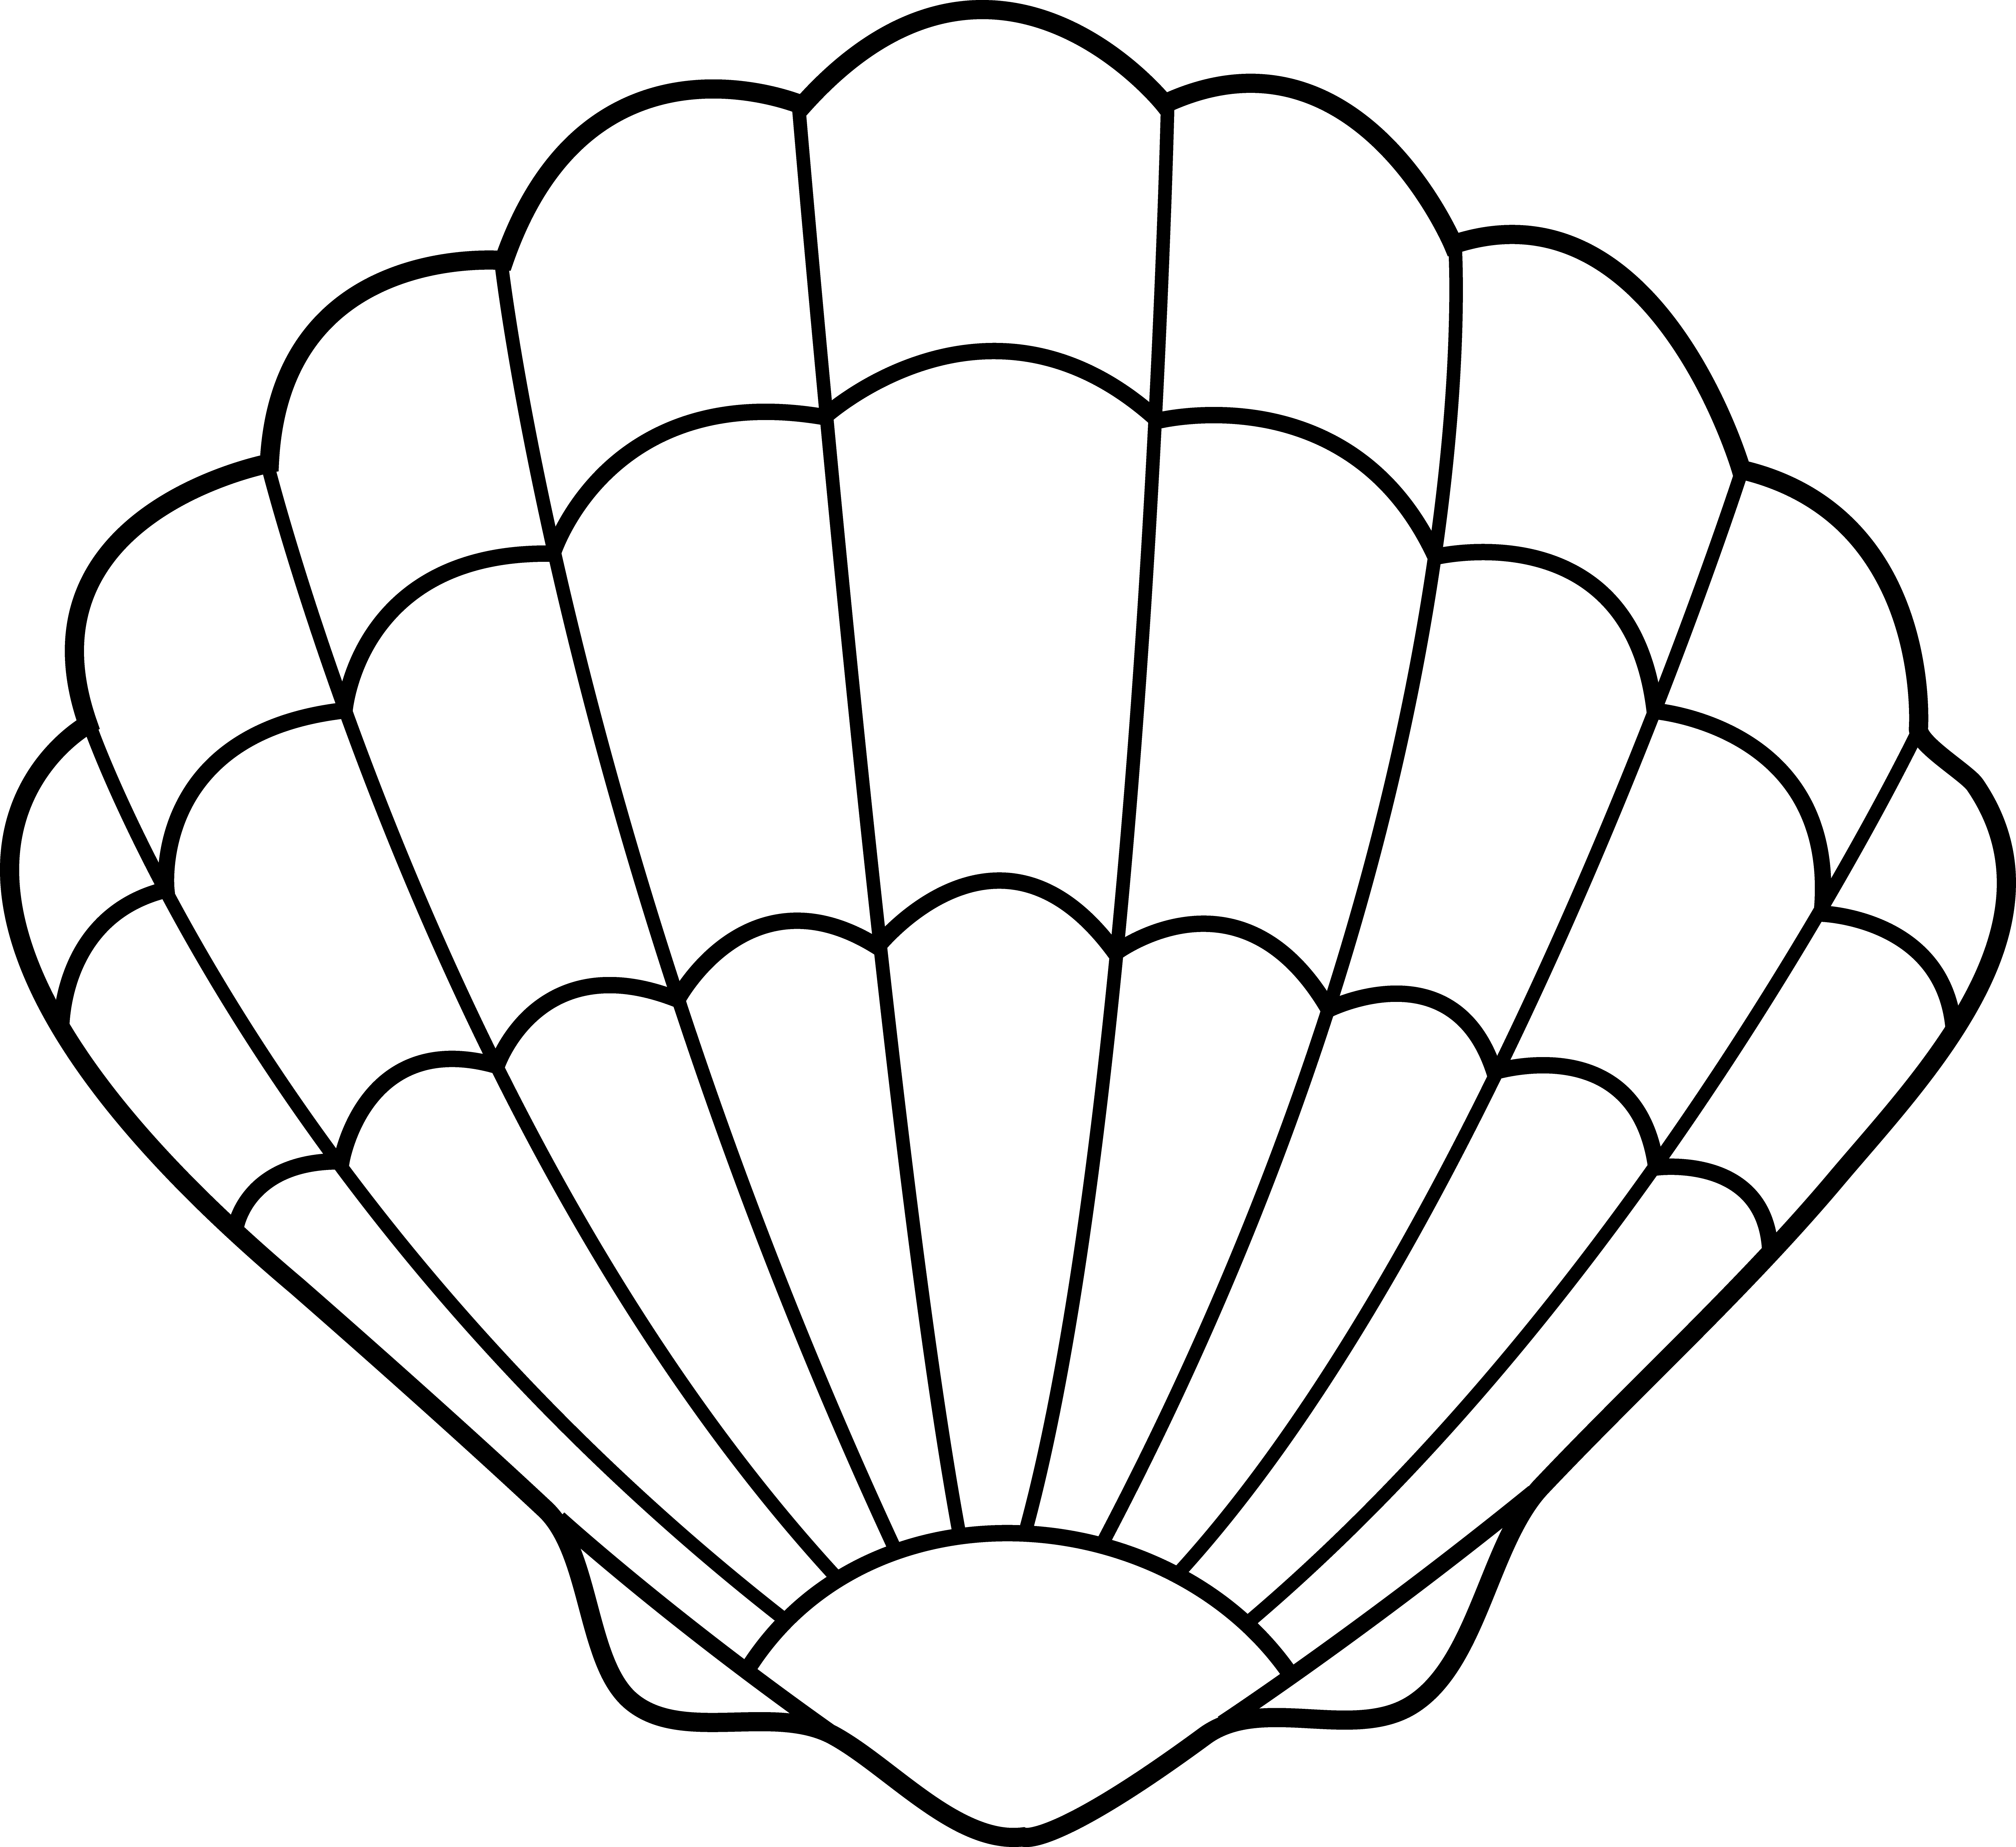 Shell heart clipart picture transparent library Colorable Seashell   ART FOR THE BROKEN HEART   Pinterest   Clip art ... picture transparent library